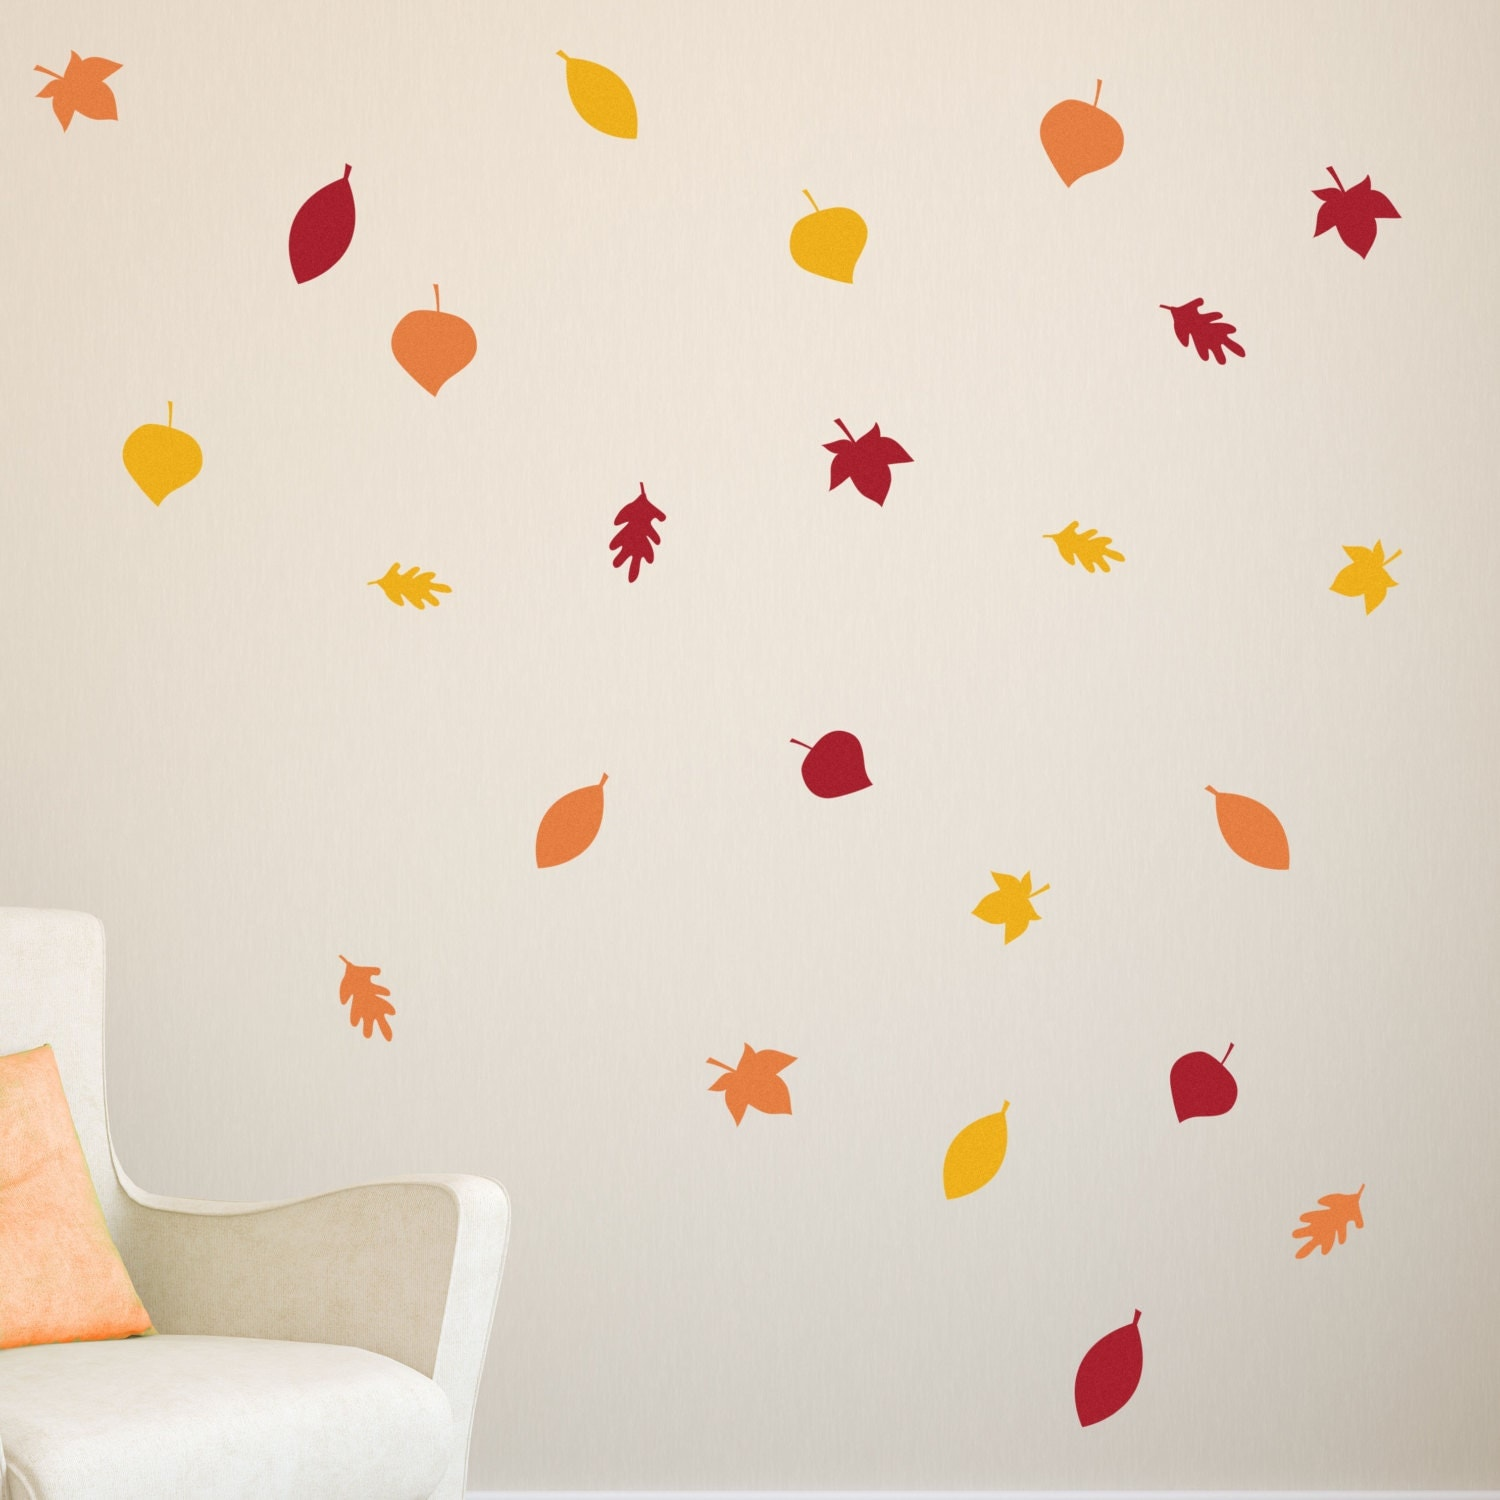 24 Pc Fall Leaves Wall Decals Autumn Leaves Decals Fall